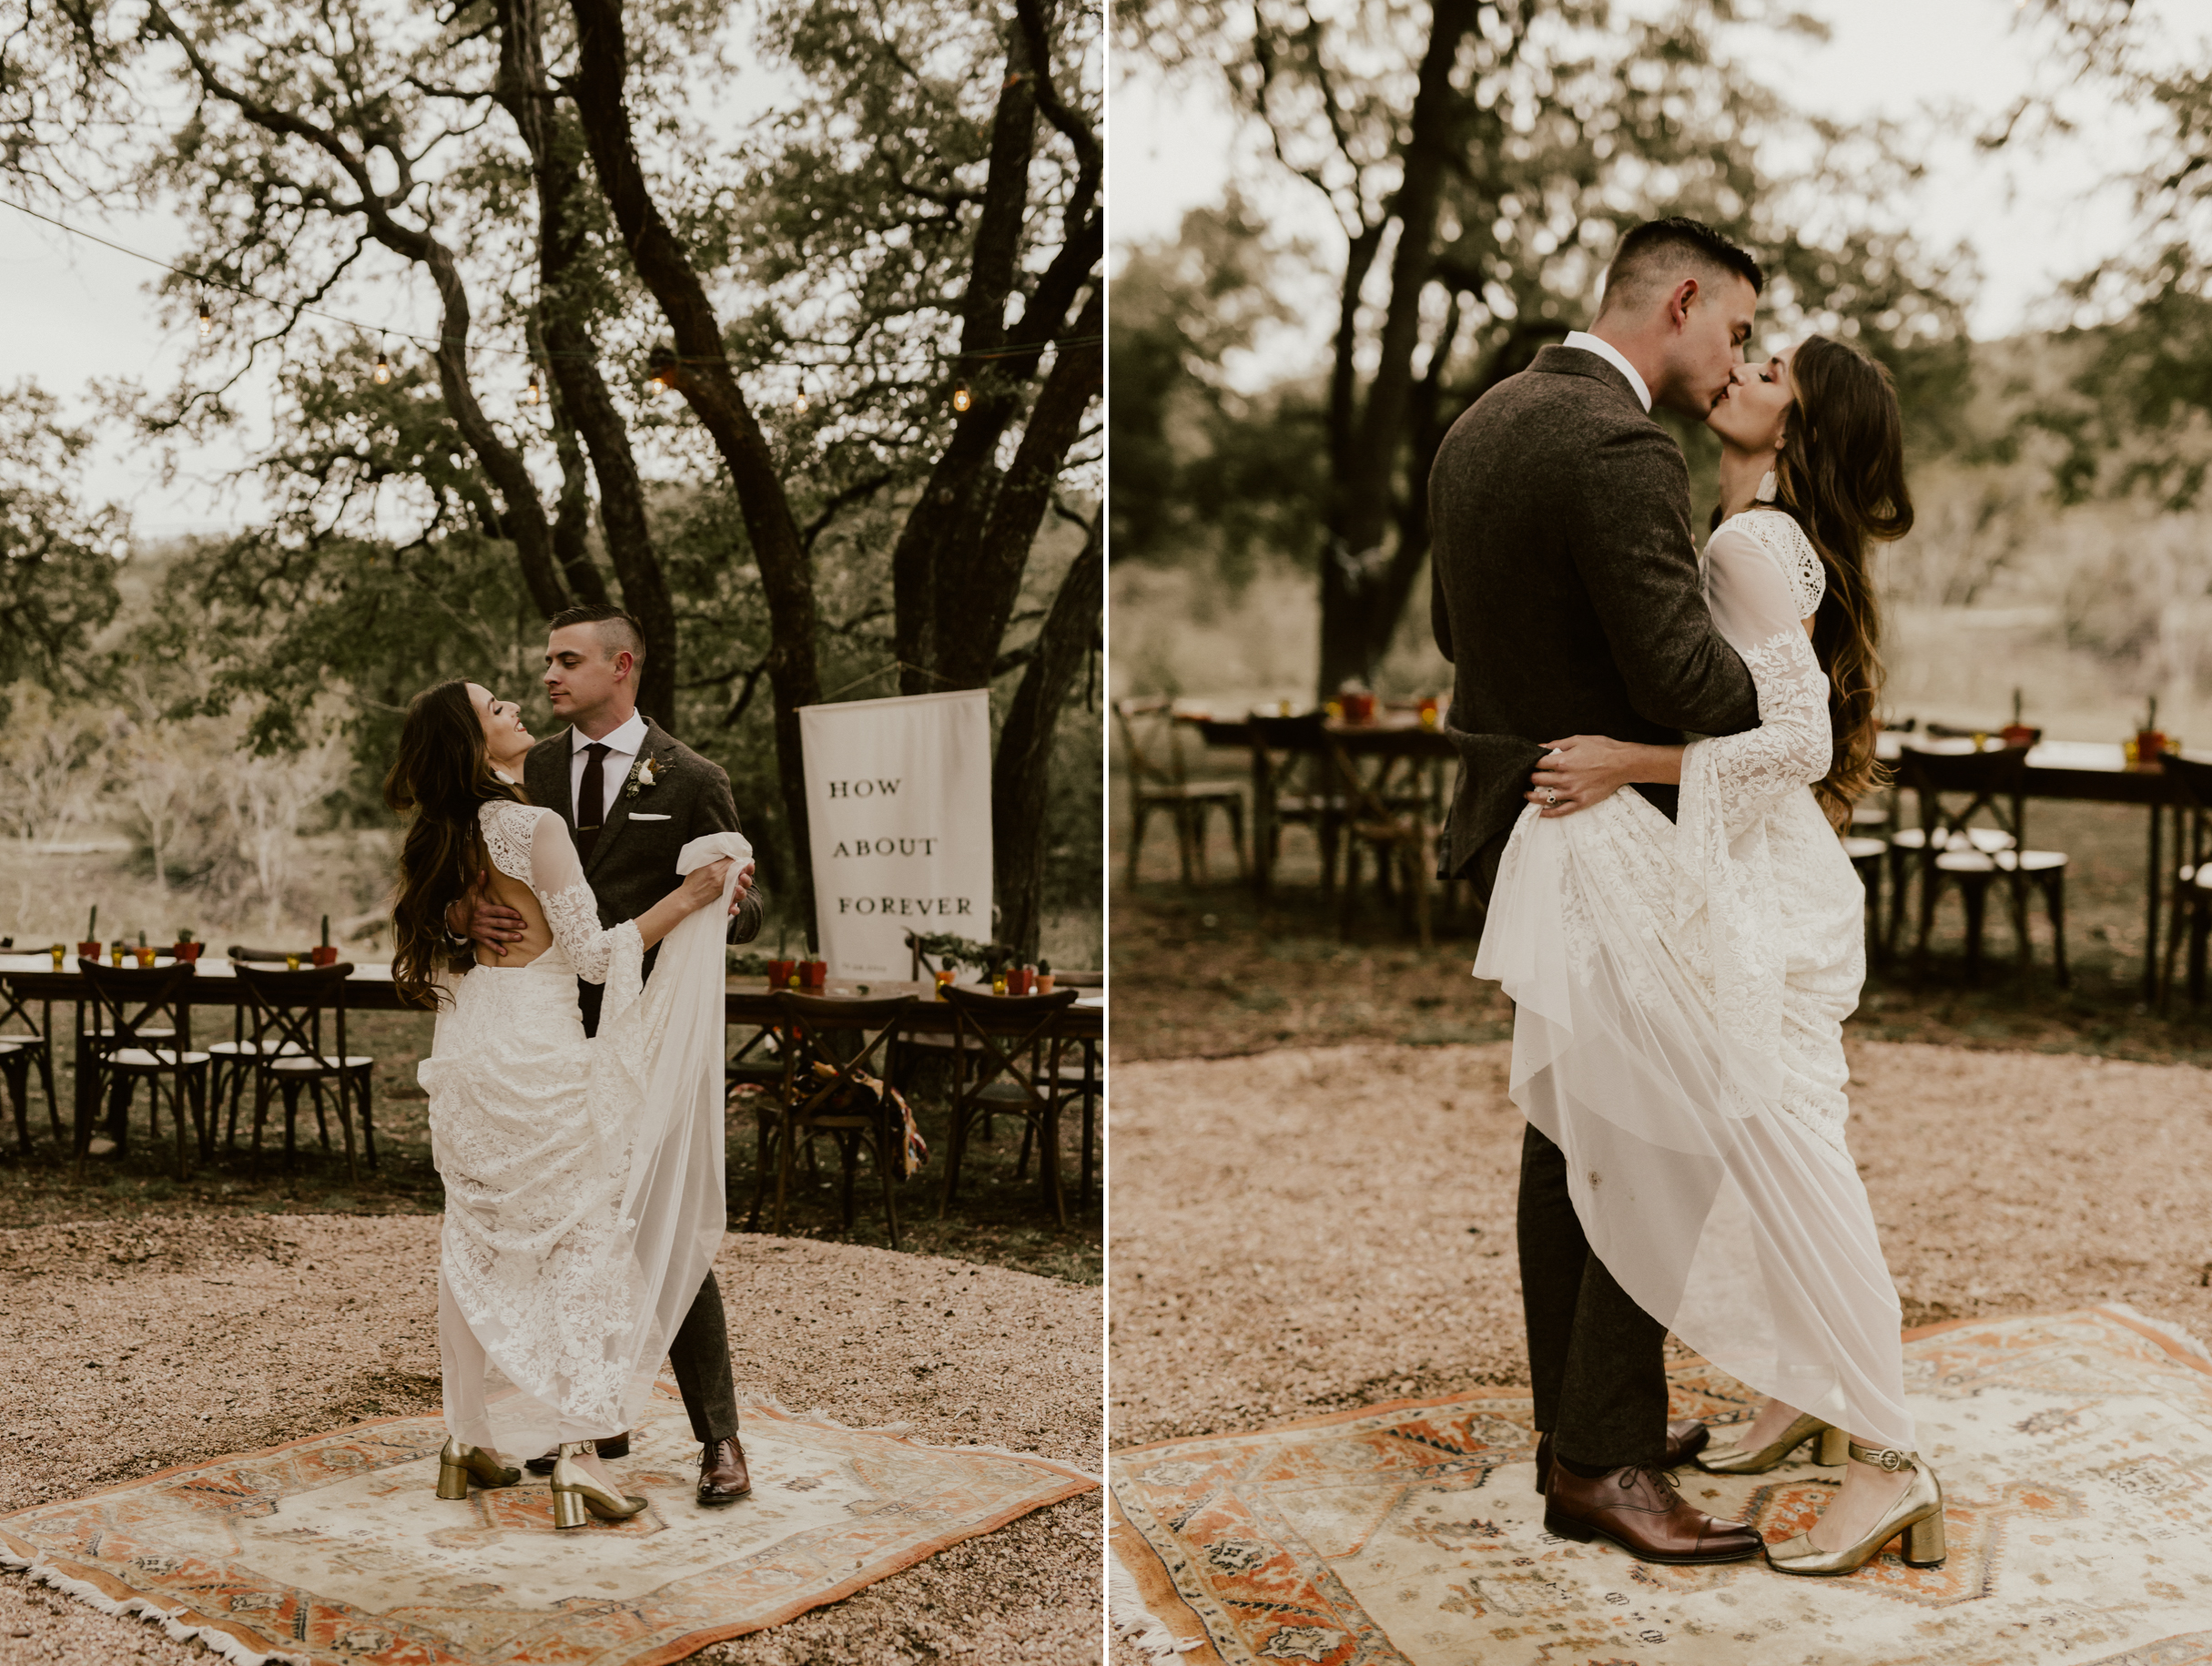 fall-intimate-vow-renewal-austin-texas-wedding-photographer-2075-2099.jpg